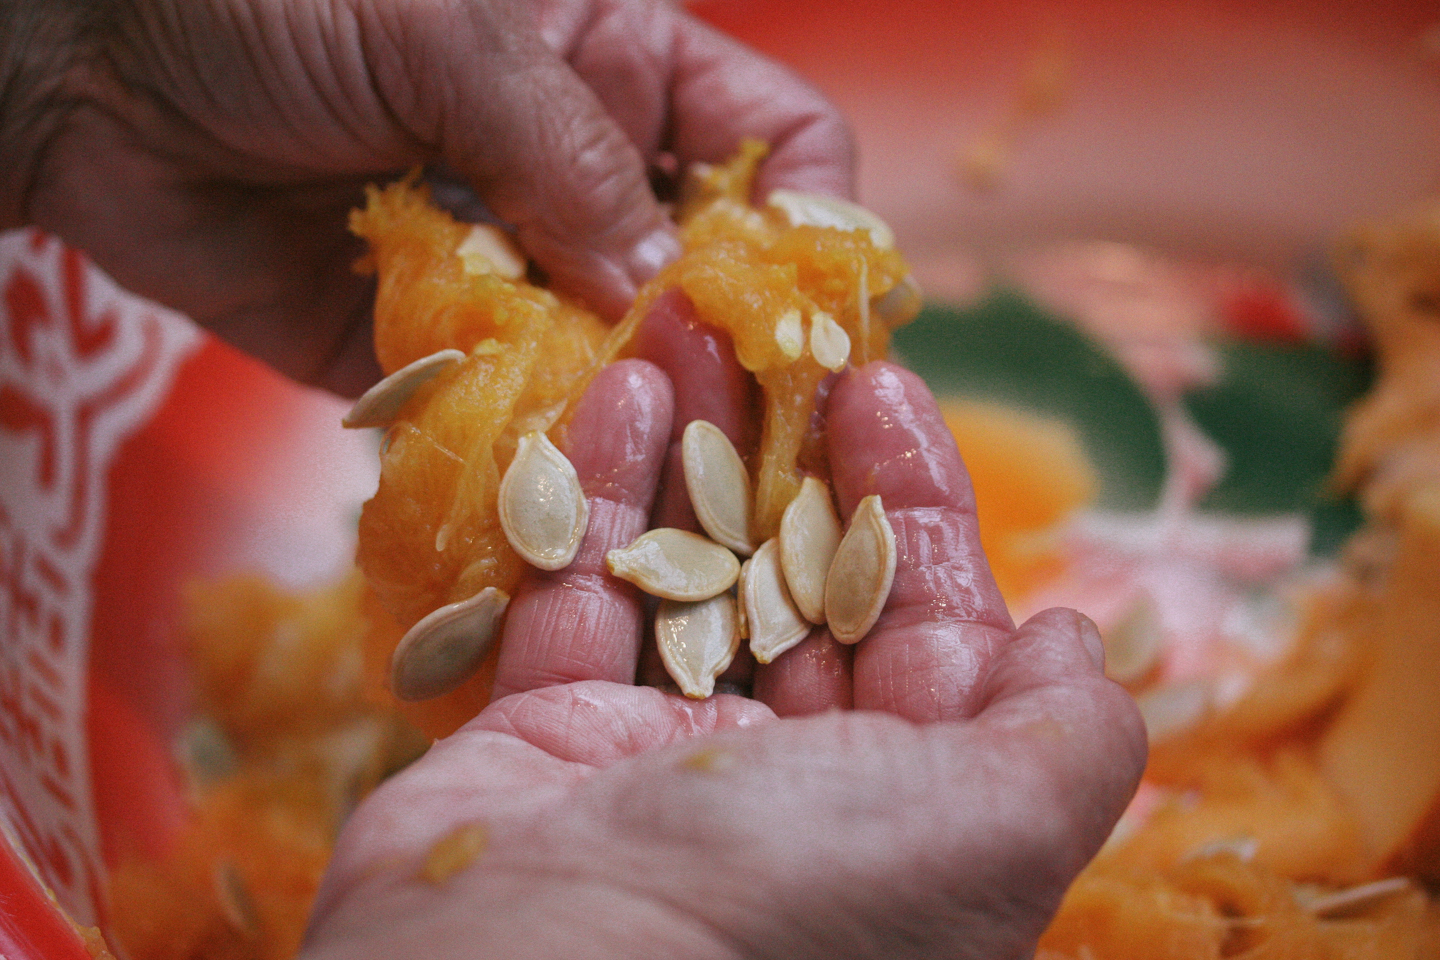 Picking out the seeds from the pulp